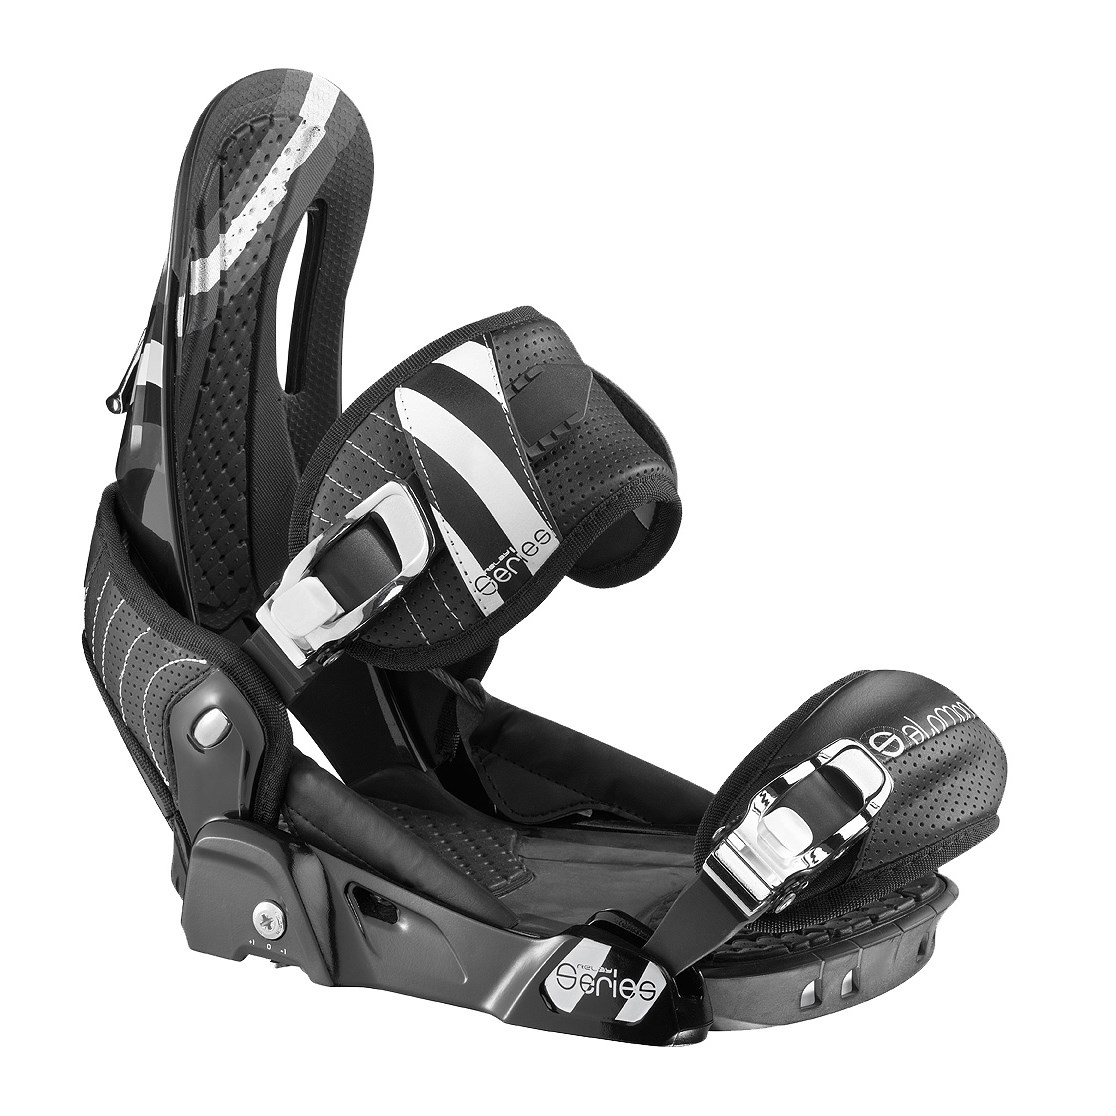 Salomon Relay Series Snowboard Bindings  Evo Outlet - Basic http relay binding